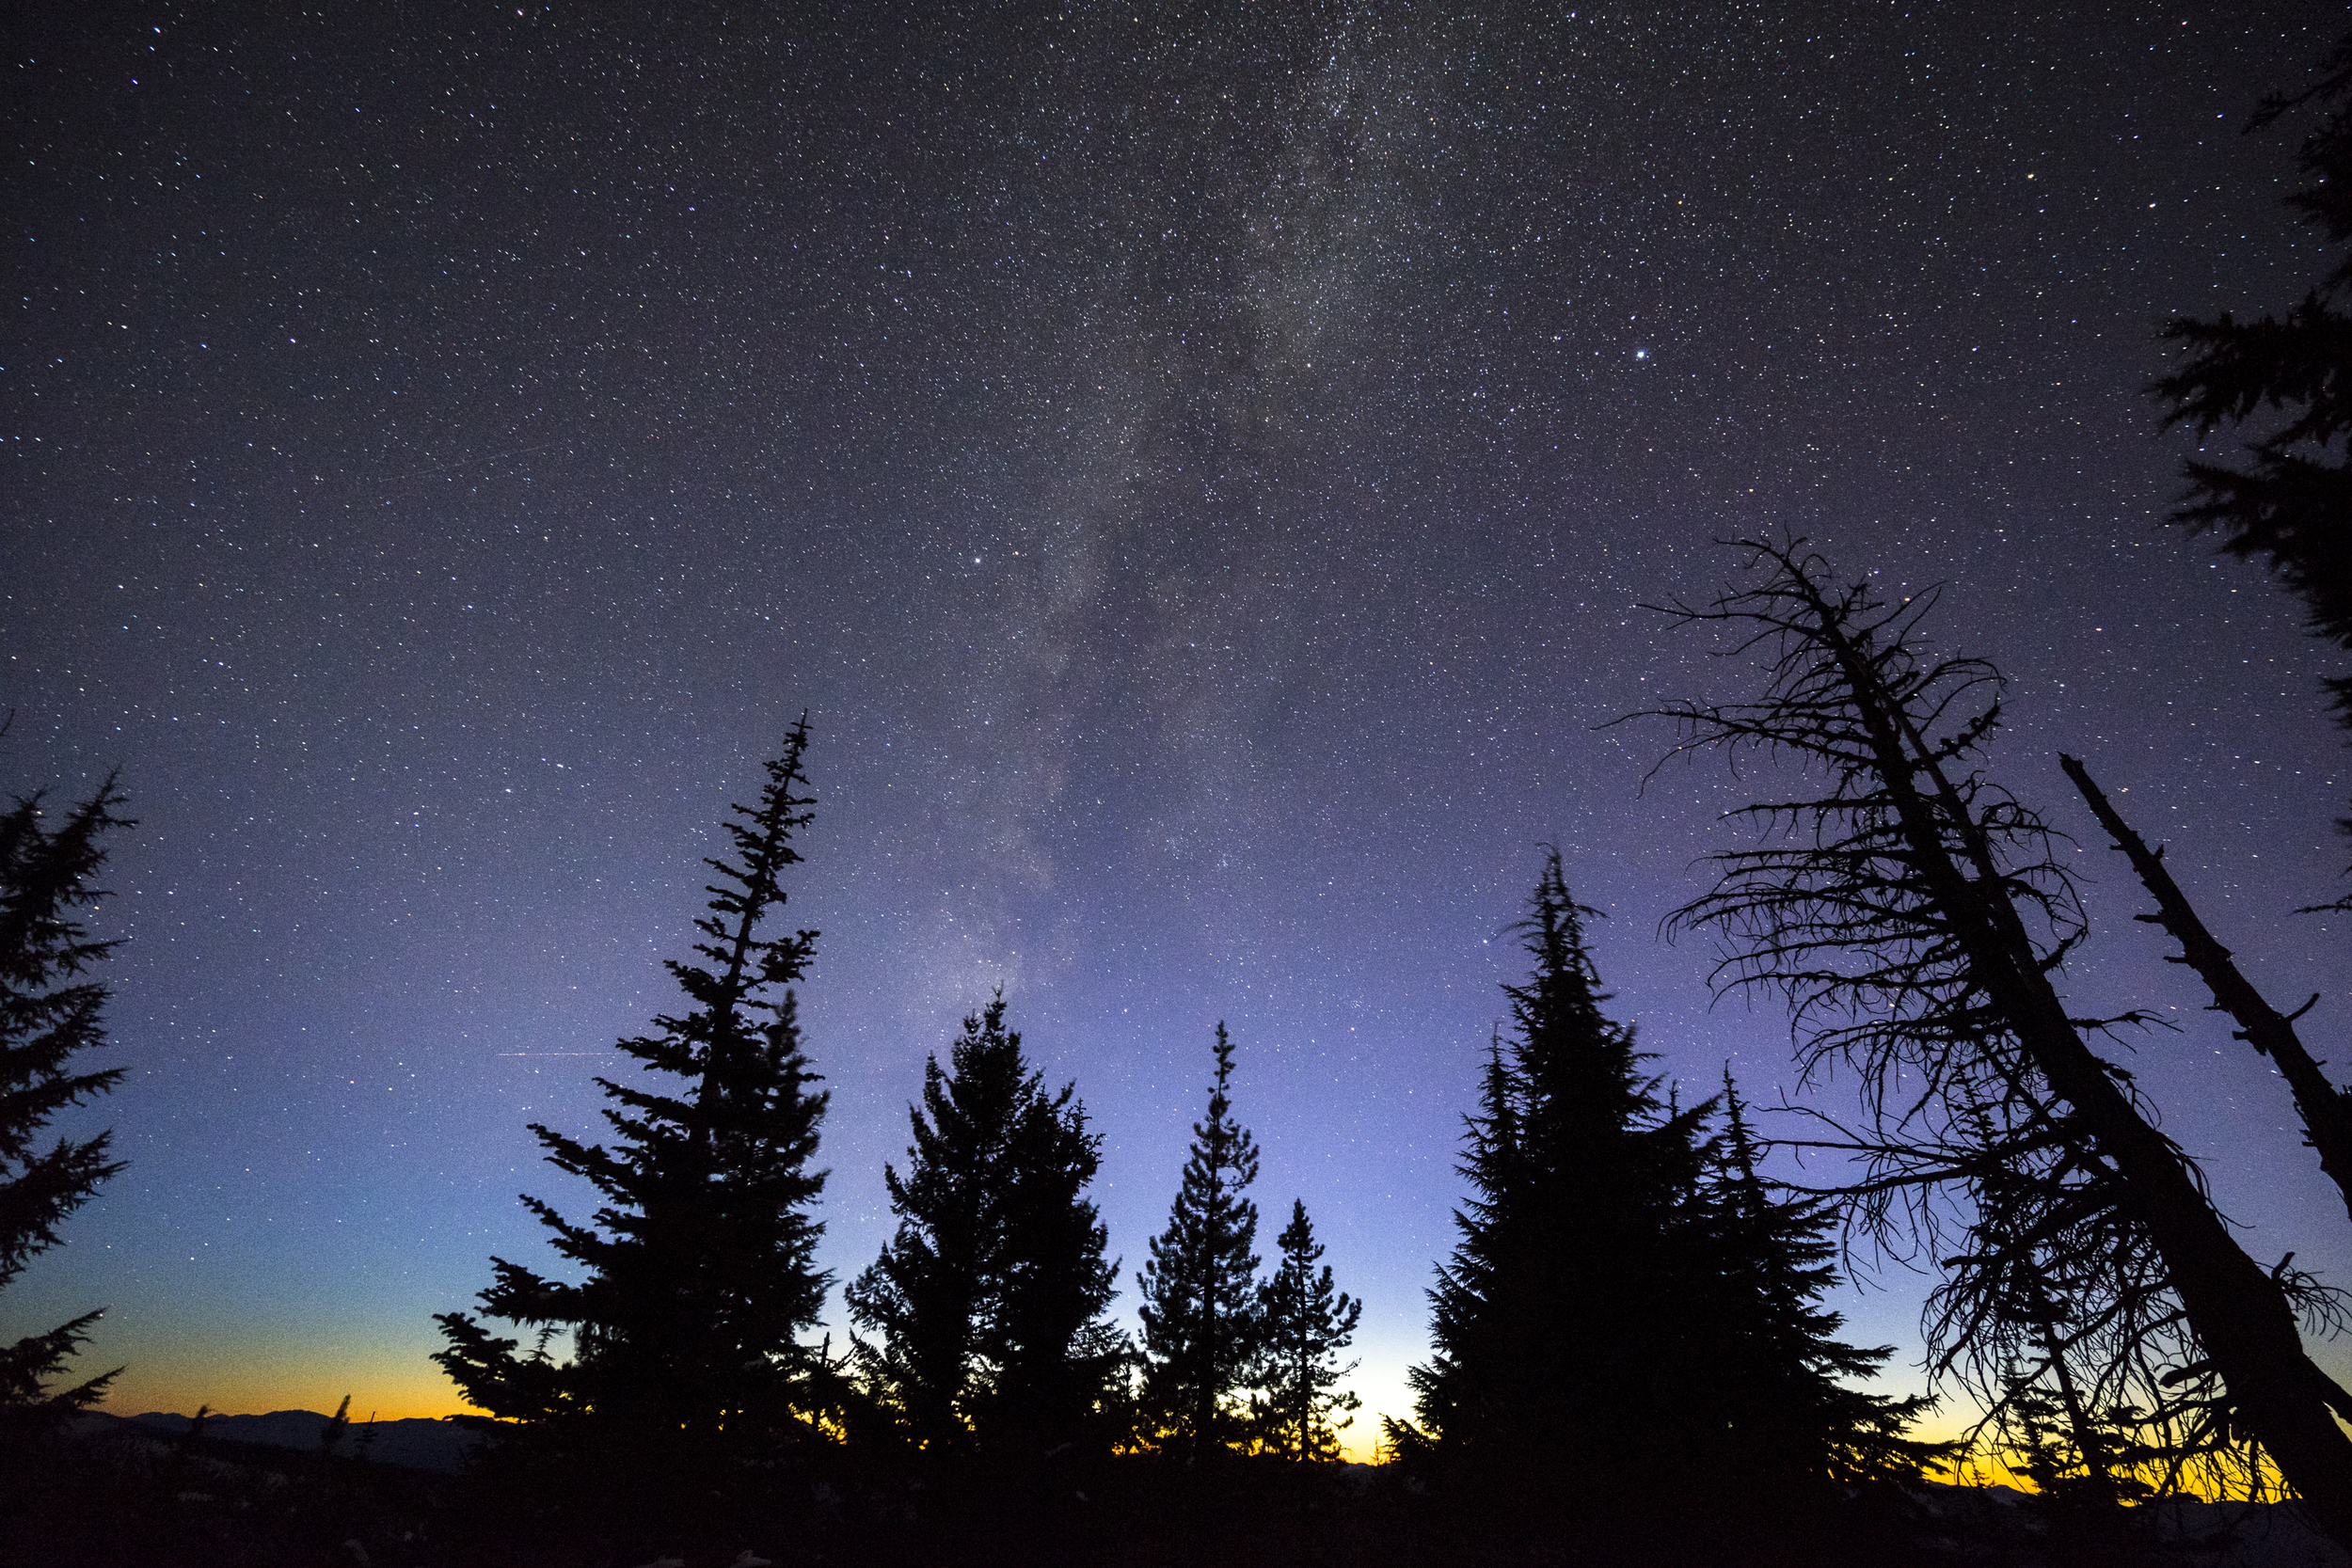 Milky Way and the Sunset